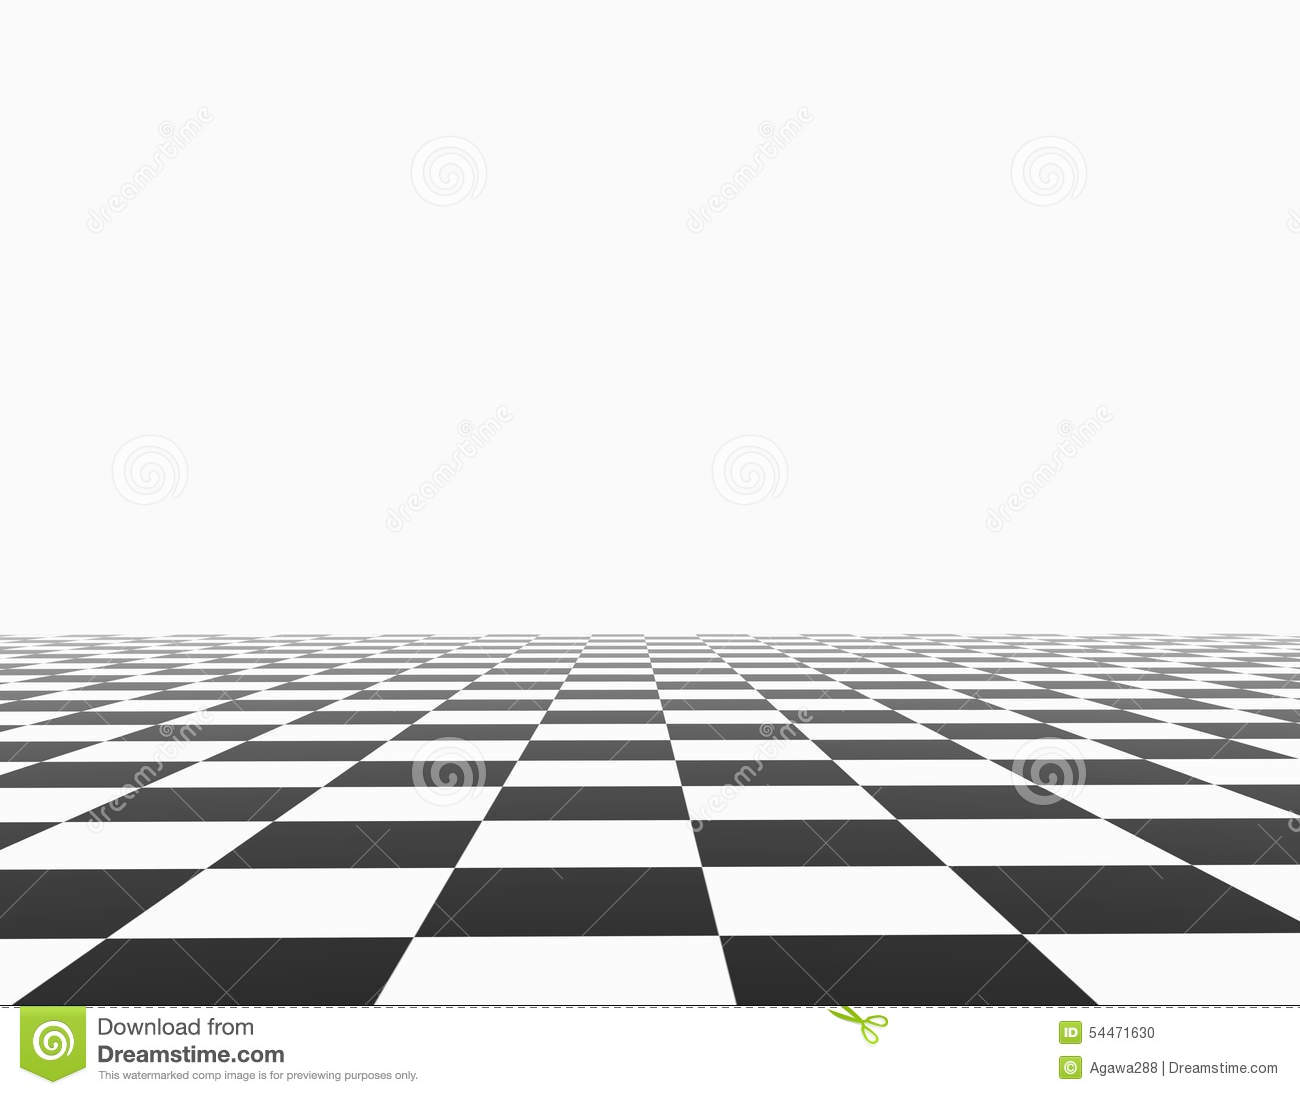 free illustration chessboard render - photo #31